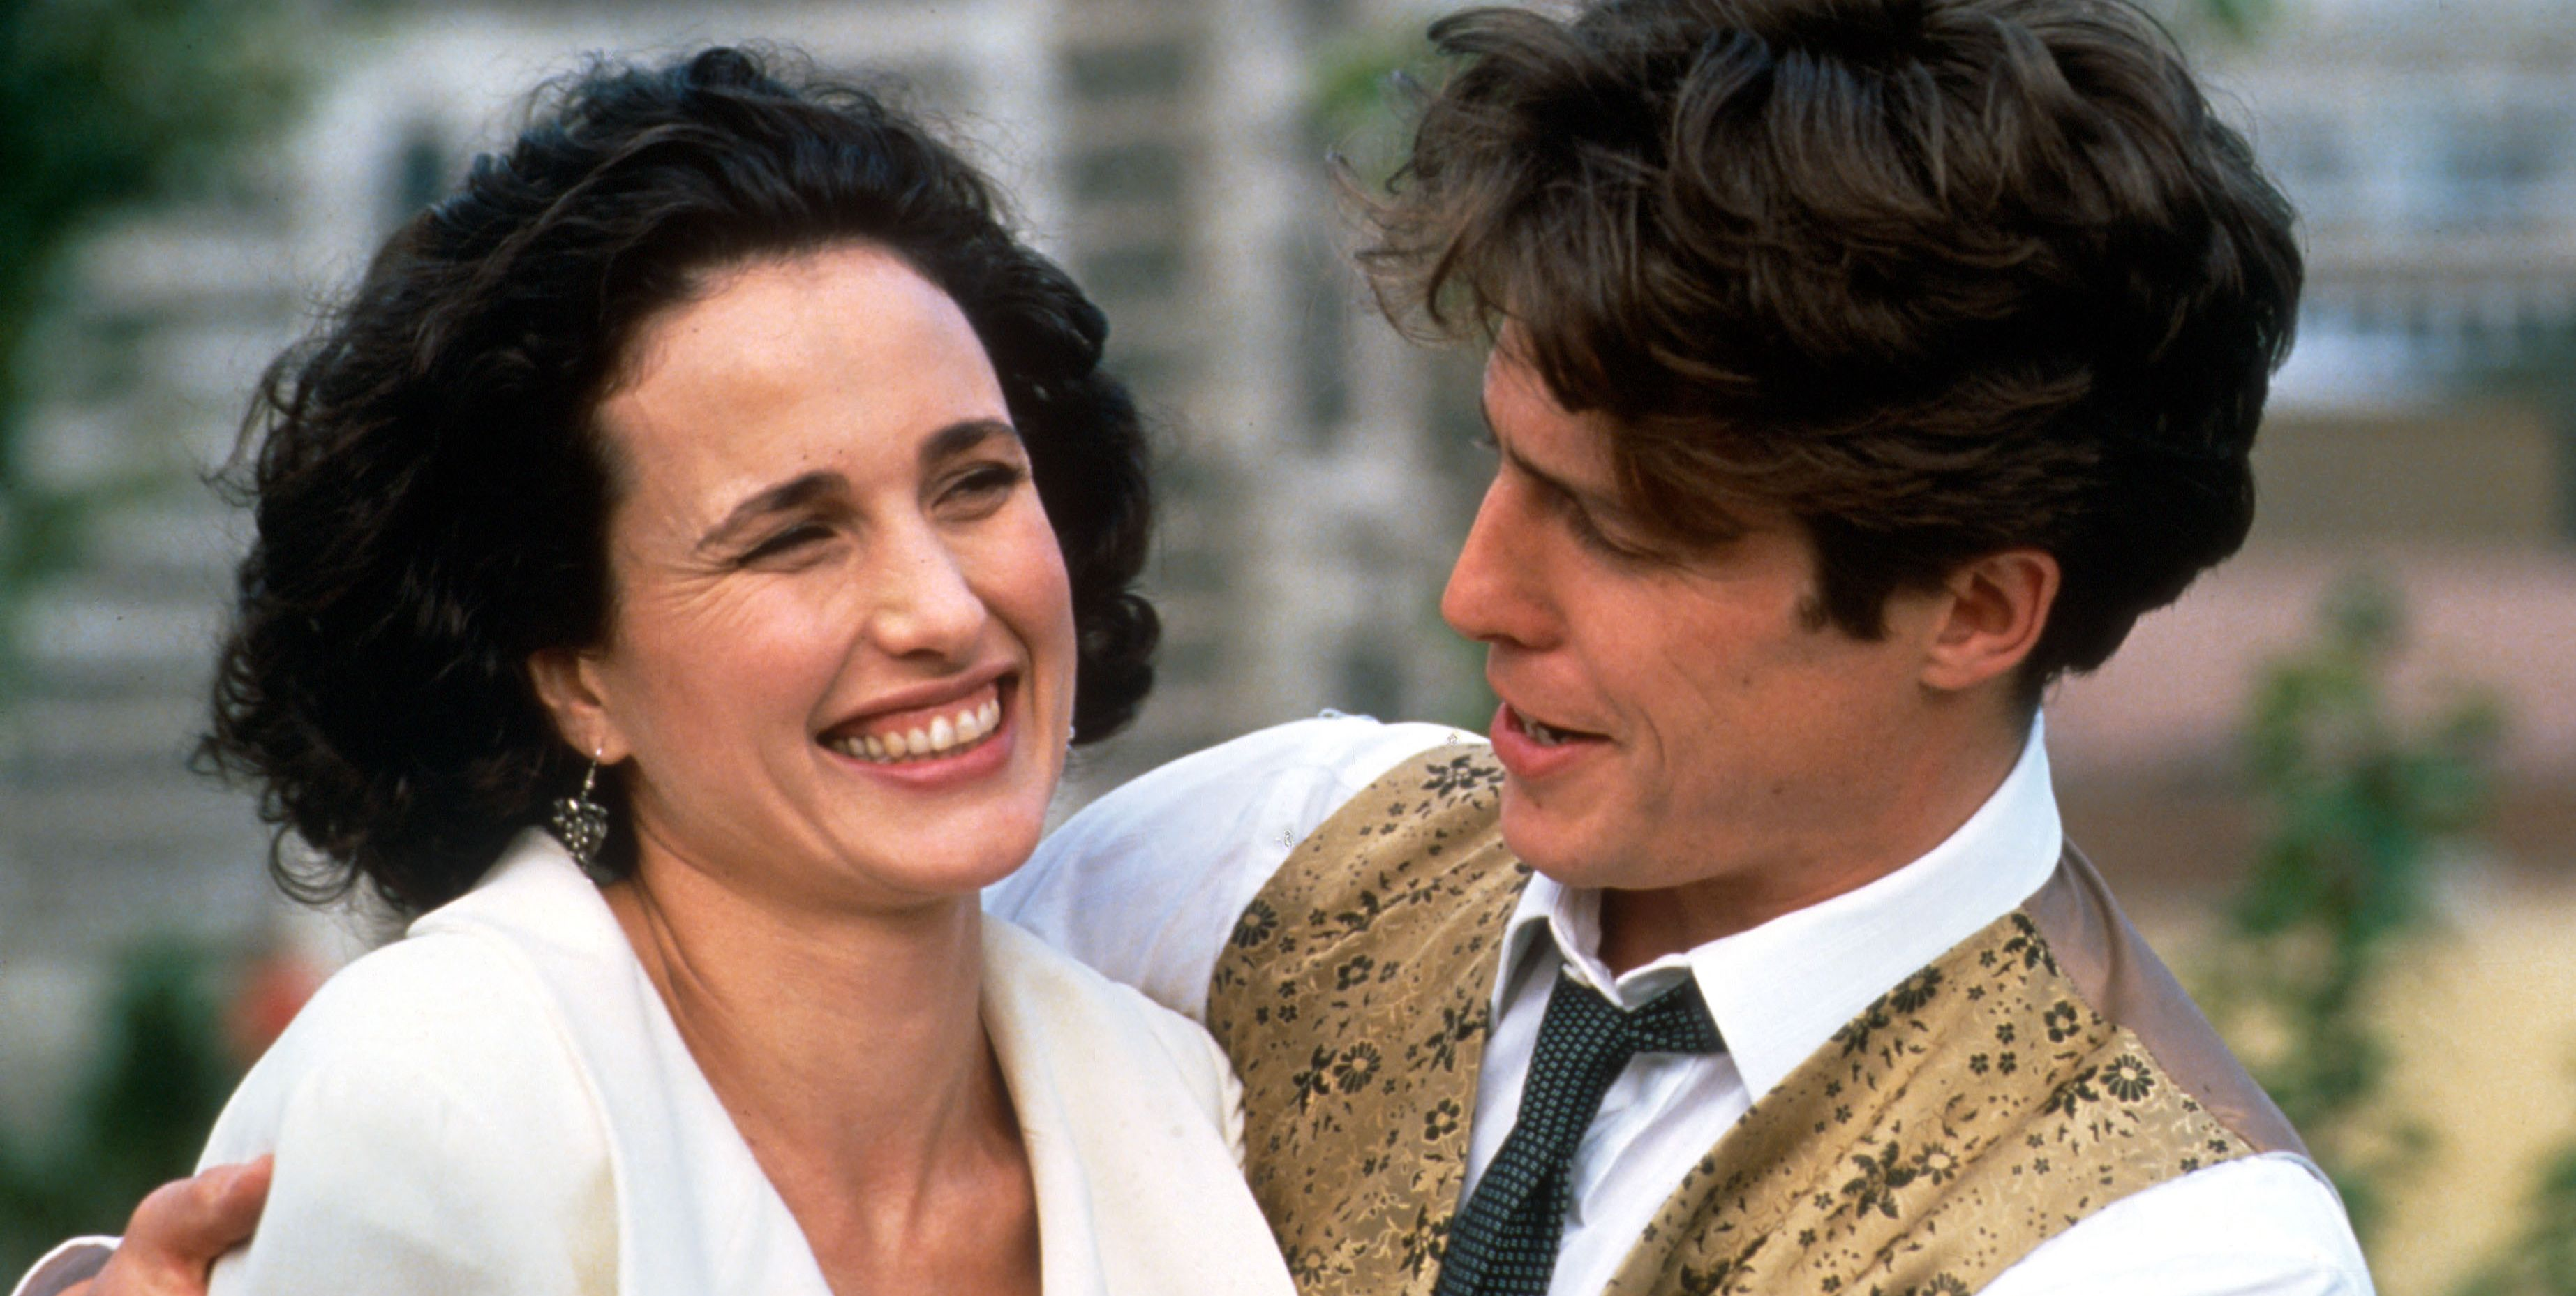 Four Weddings And A Funeral Gallery: Everything We Know So Far About The Four Weddings And A